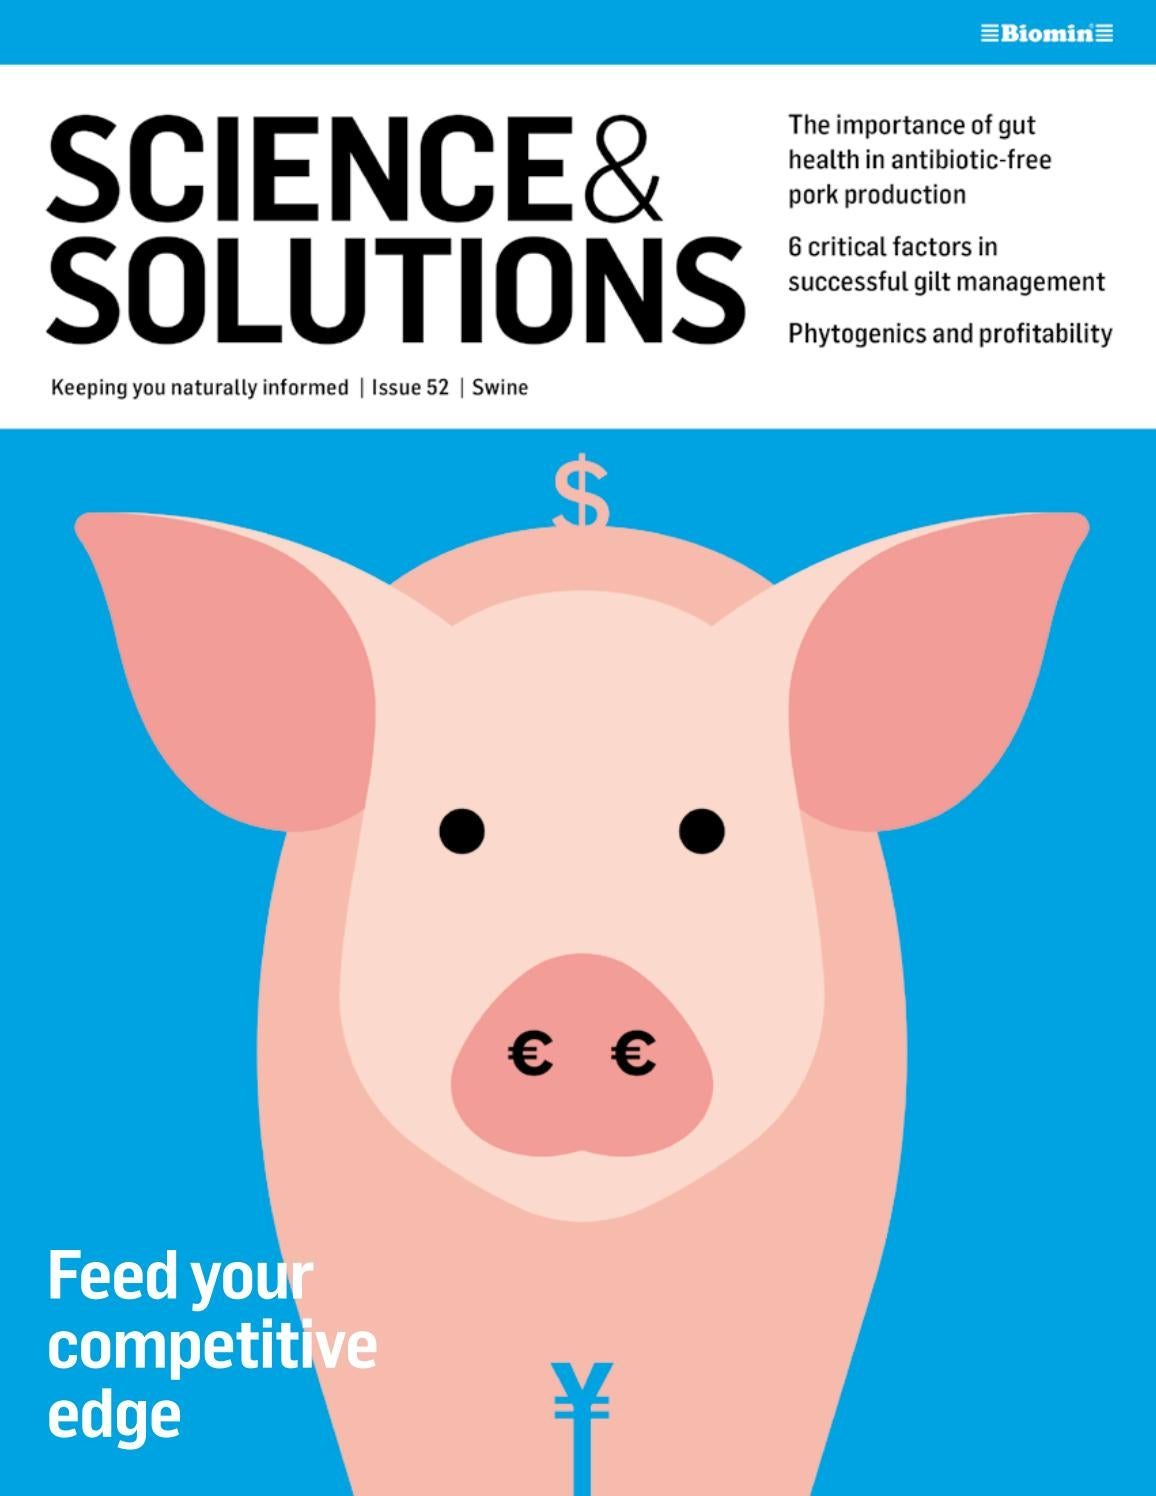 Science & Solutions No. 21   US by BIOMIN   issuu